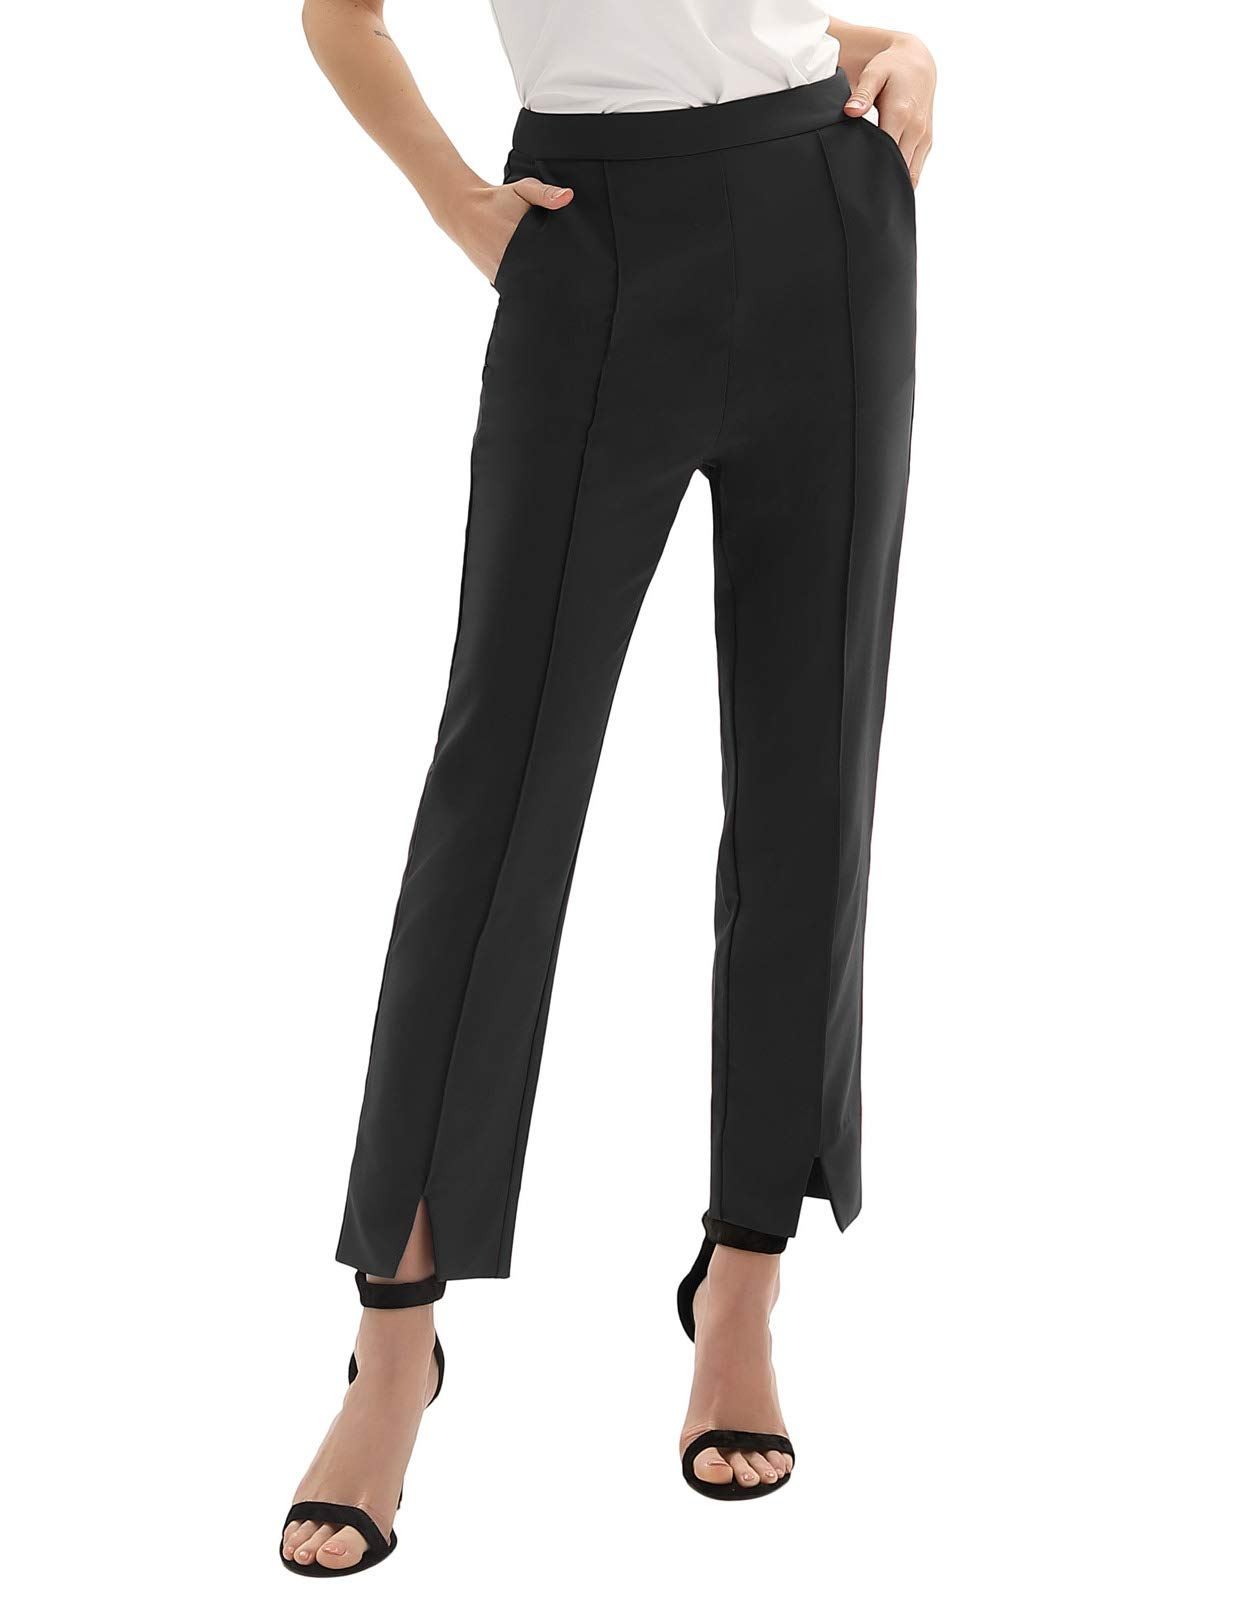 GRACE KARIN Womens Casual Business Dress Pants Ankle Cropped Pant Tummy Control Black XL